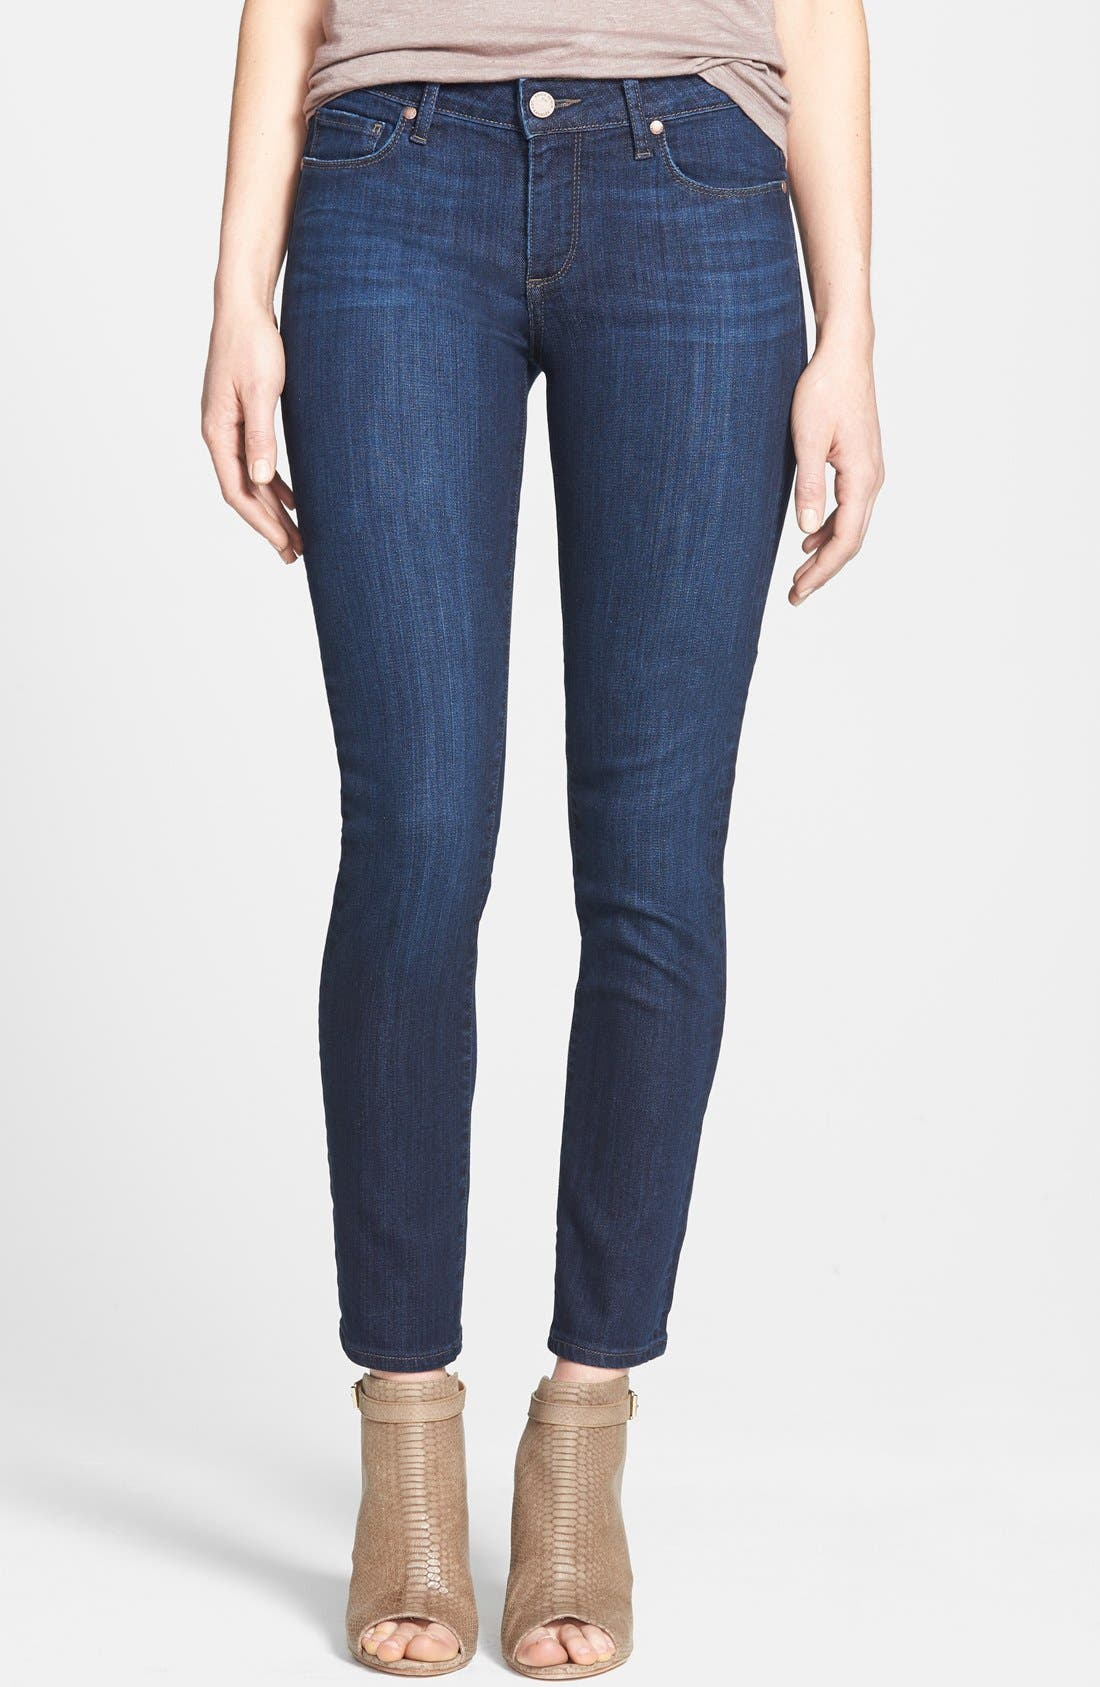 Main Image - Paige Denim 'Skyline' Ankle Peg Skinny Jeans (Dixie) (Nordstrom Exclusive)